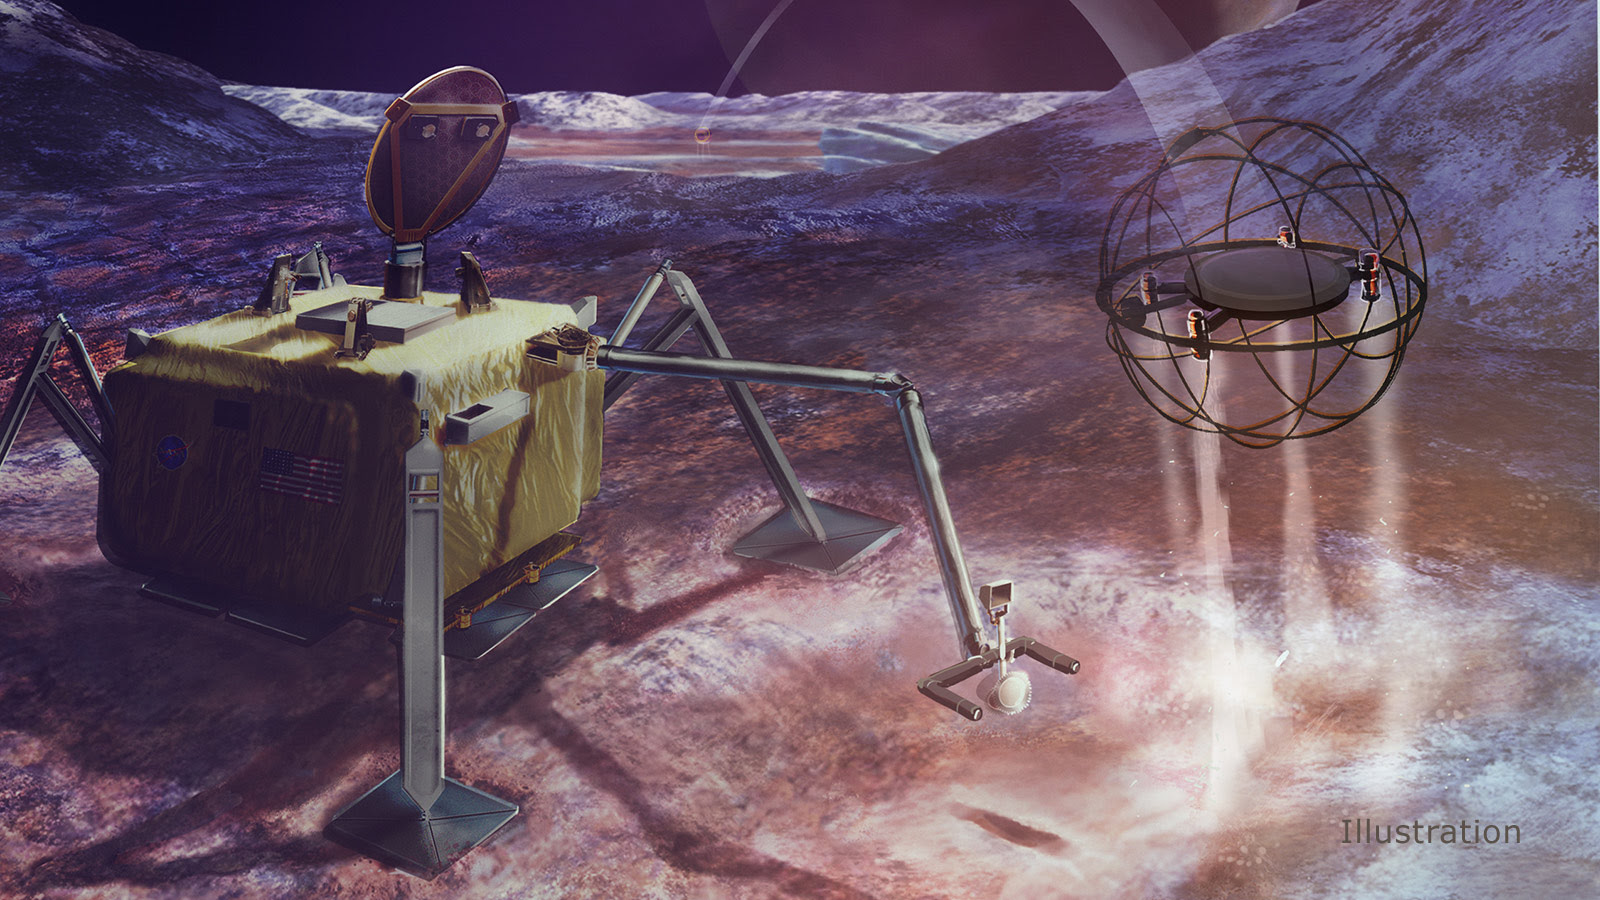 Steampunk space exploration? Icy moon robot could hop around on steam power. #rwanda #RwOT Reddit